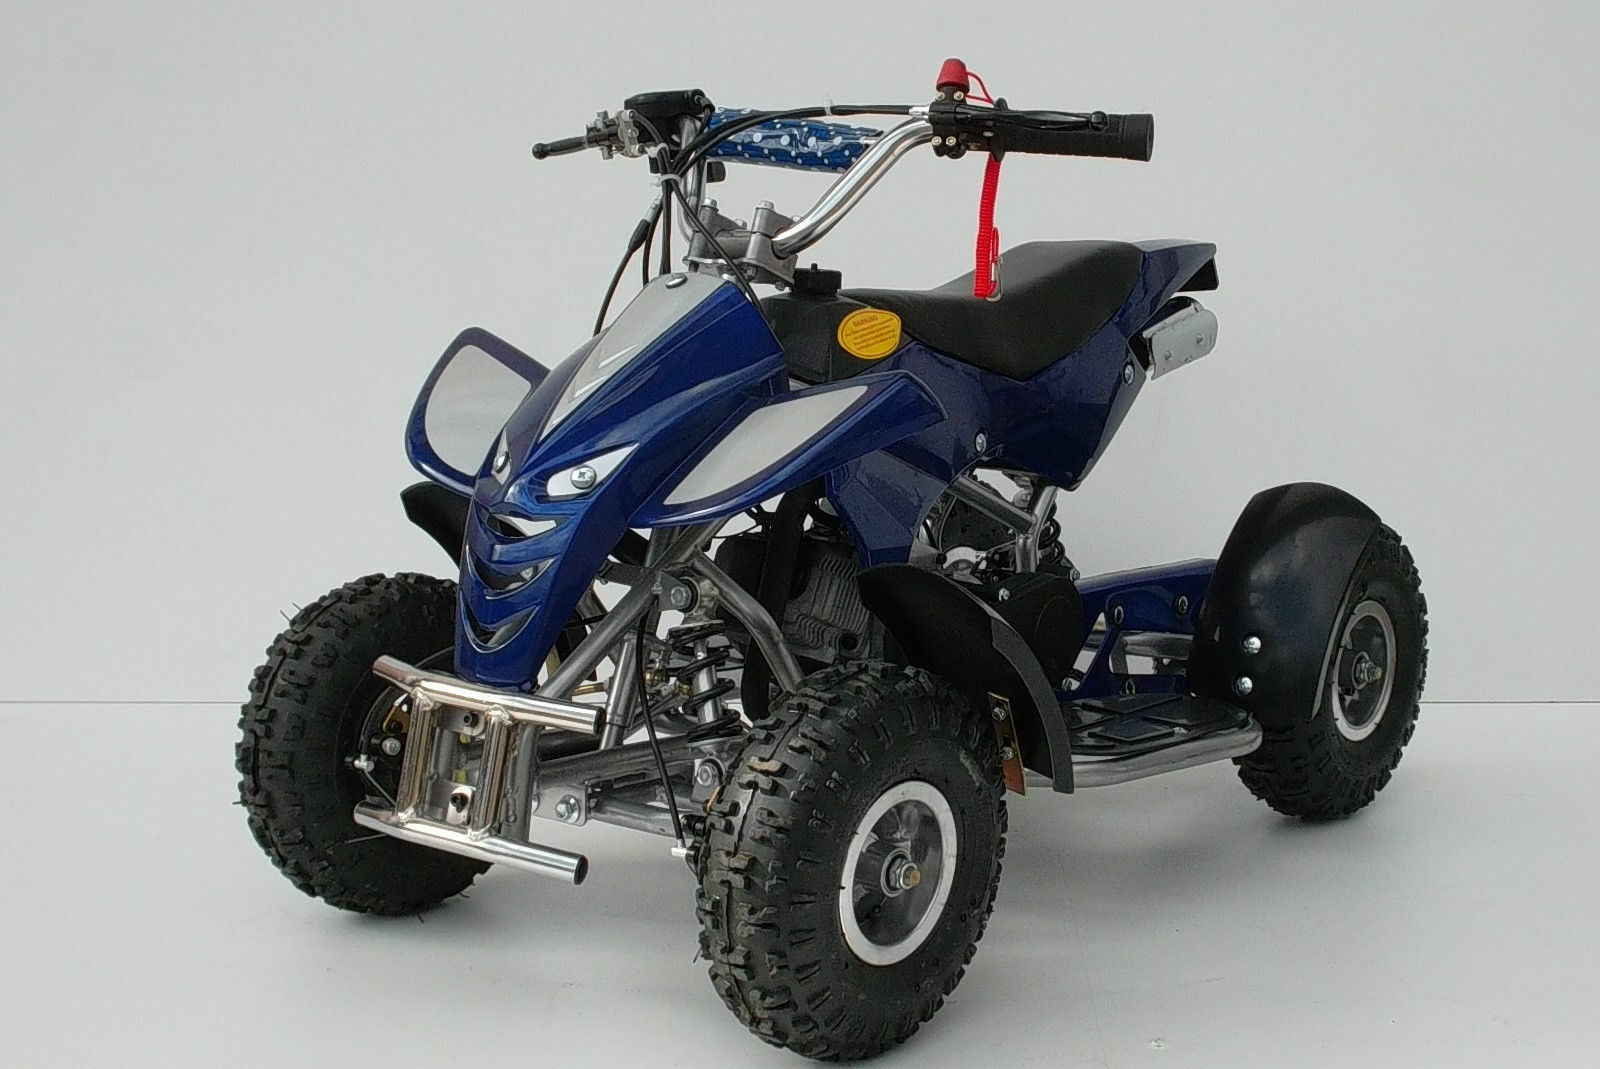 Kinderquad Quad ATV Miniquad Kinder pocketbike dirt bike pocketquad 49 50 110